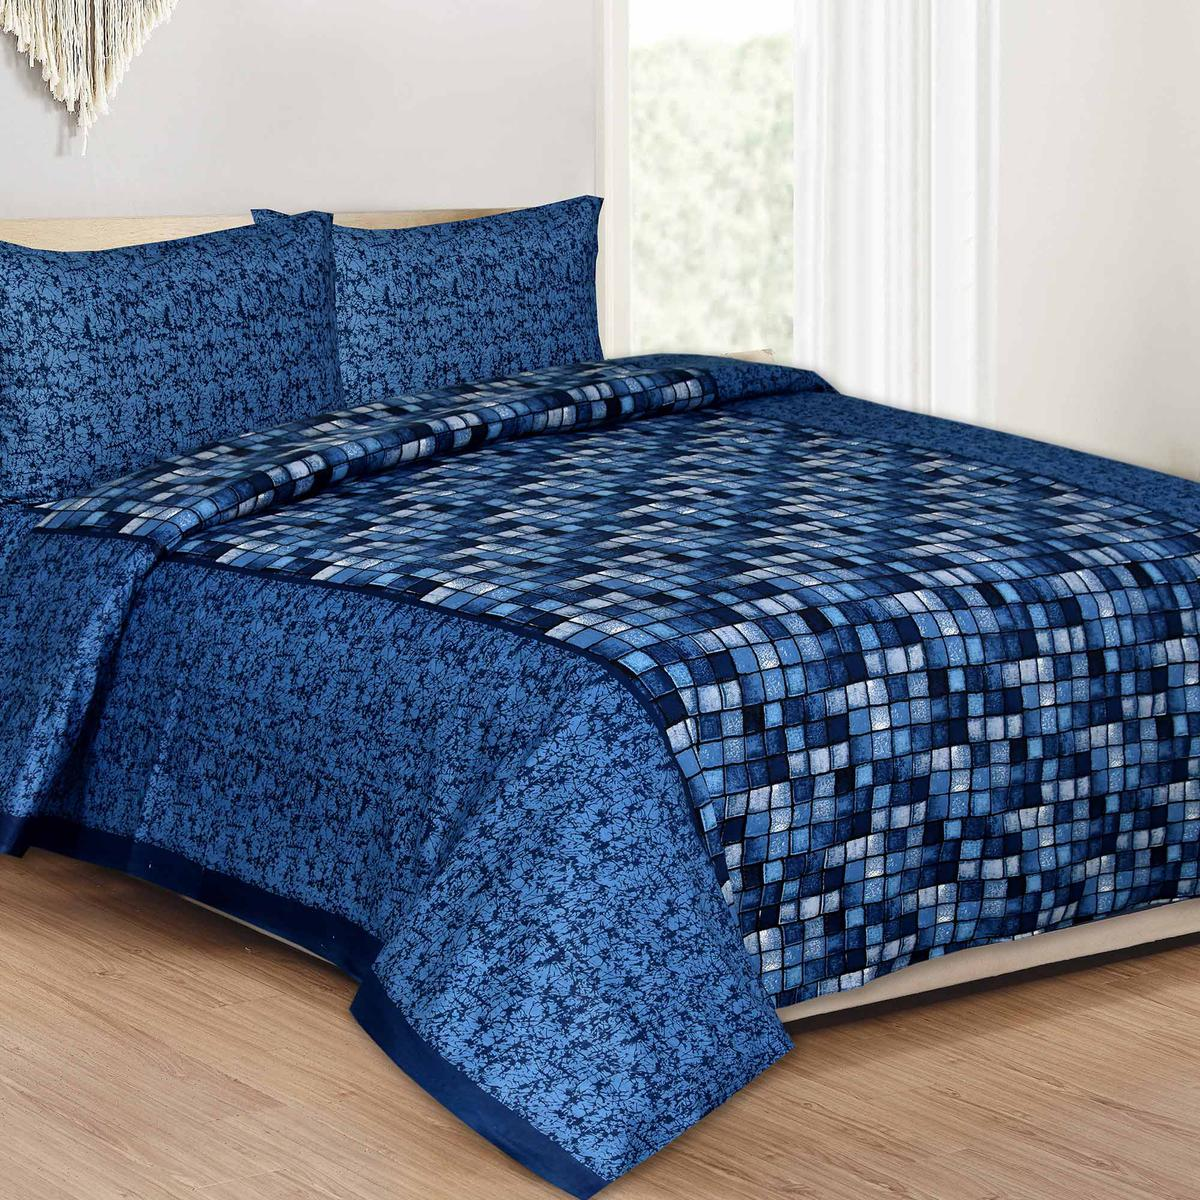 Blue Colored Boxy Beauty Cotton Queen Size Bed Sheet With 2 Pillow Cover